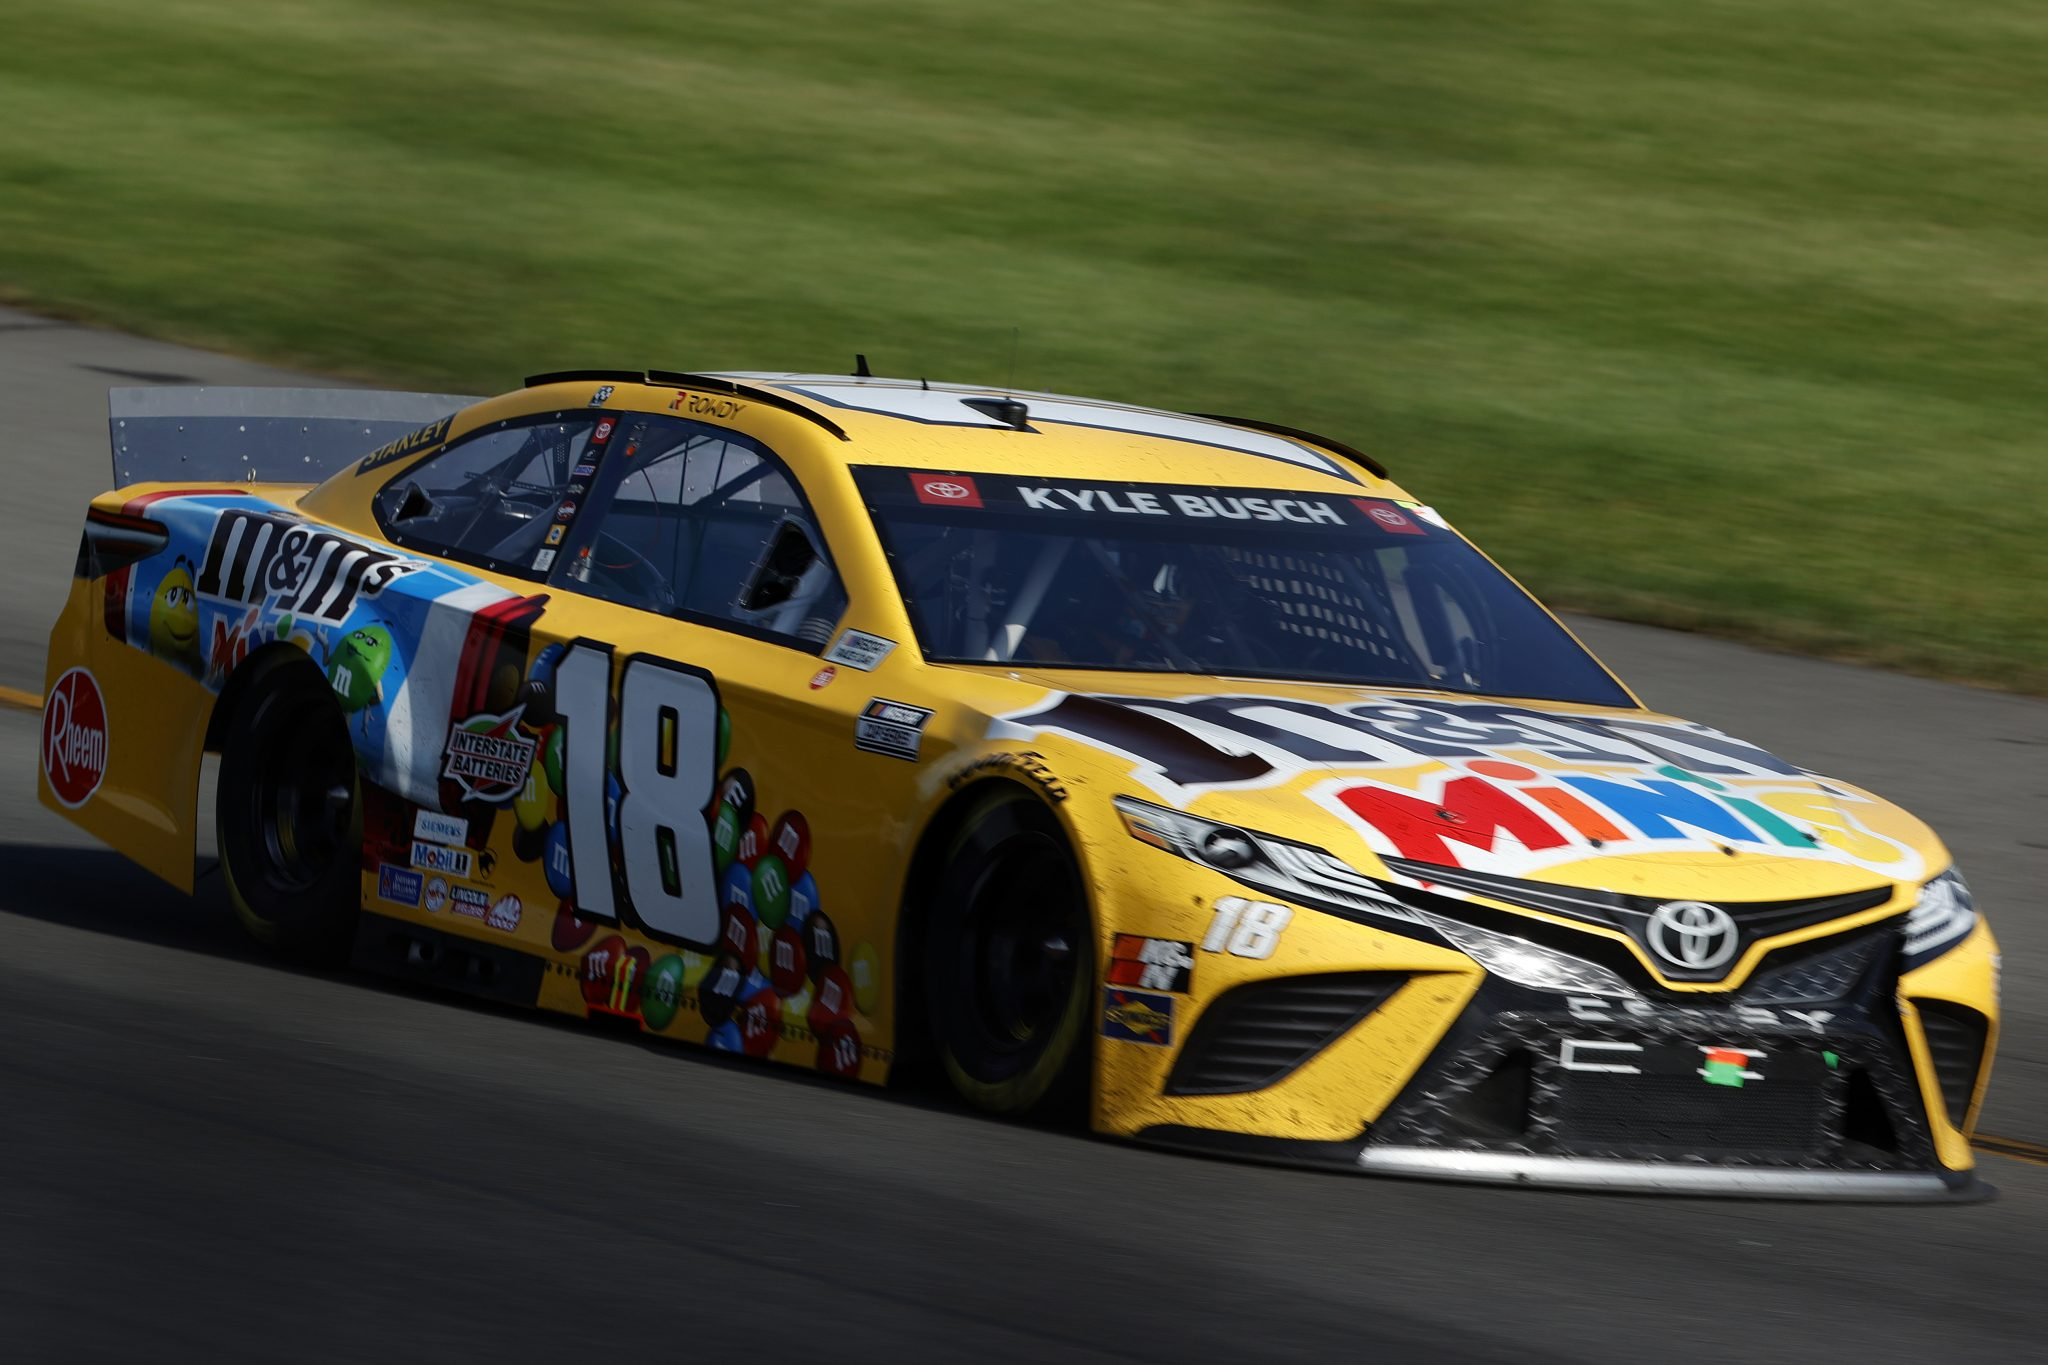 LONG POND, PENNSYLVANIA - JUNE 27: Kyle Busch, driver of the #18 M&M's Mini's Toyota, drives during the NASCAR Cup Series Explore the Pocono Mountains 350 at Pocono Raceway on June 27, 2021 in Long Pond, Pennsylvania. (Photo by Tim Nwachukwu/Getty Images) | Getty Images